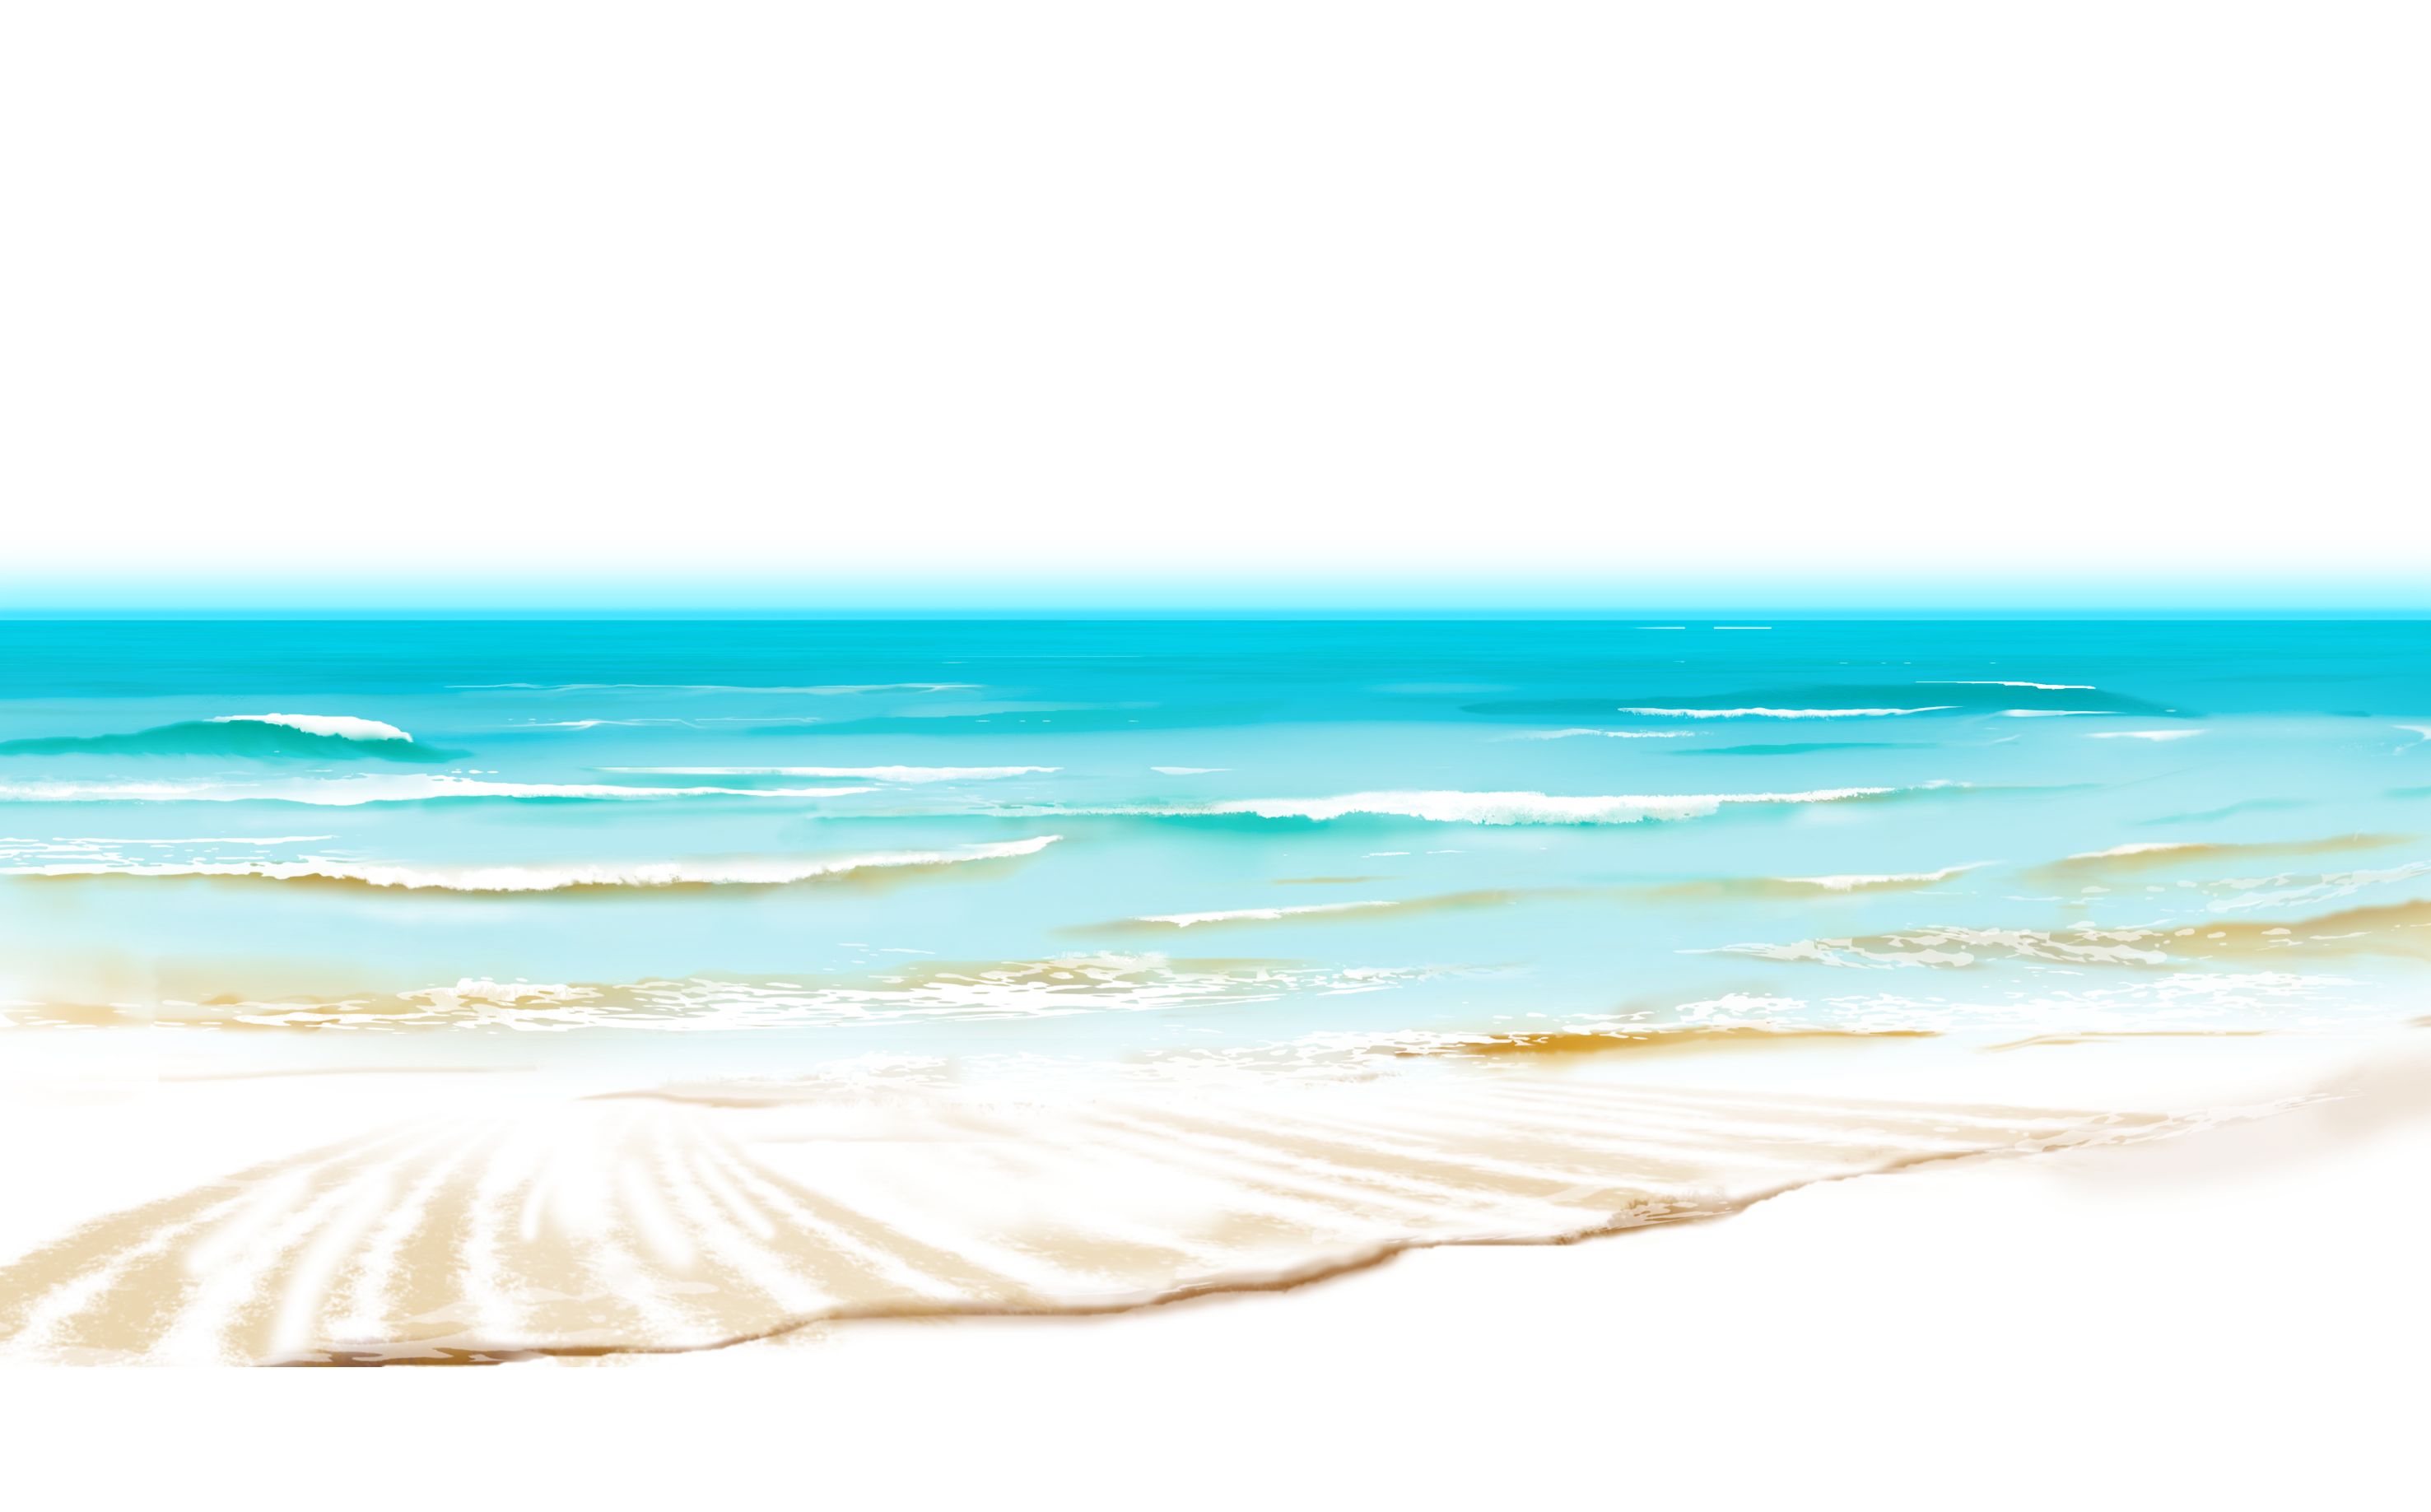 Hills clipart ground. Sea beach png pinterest